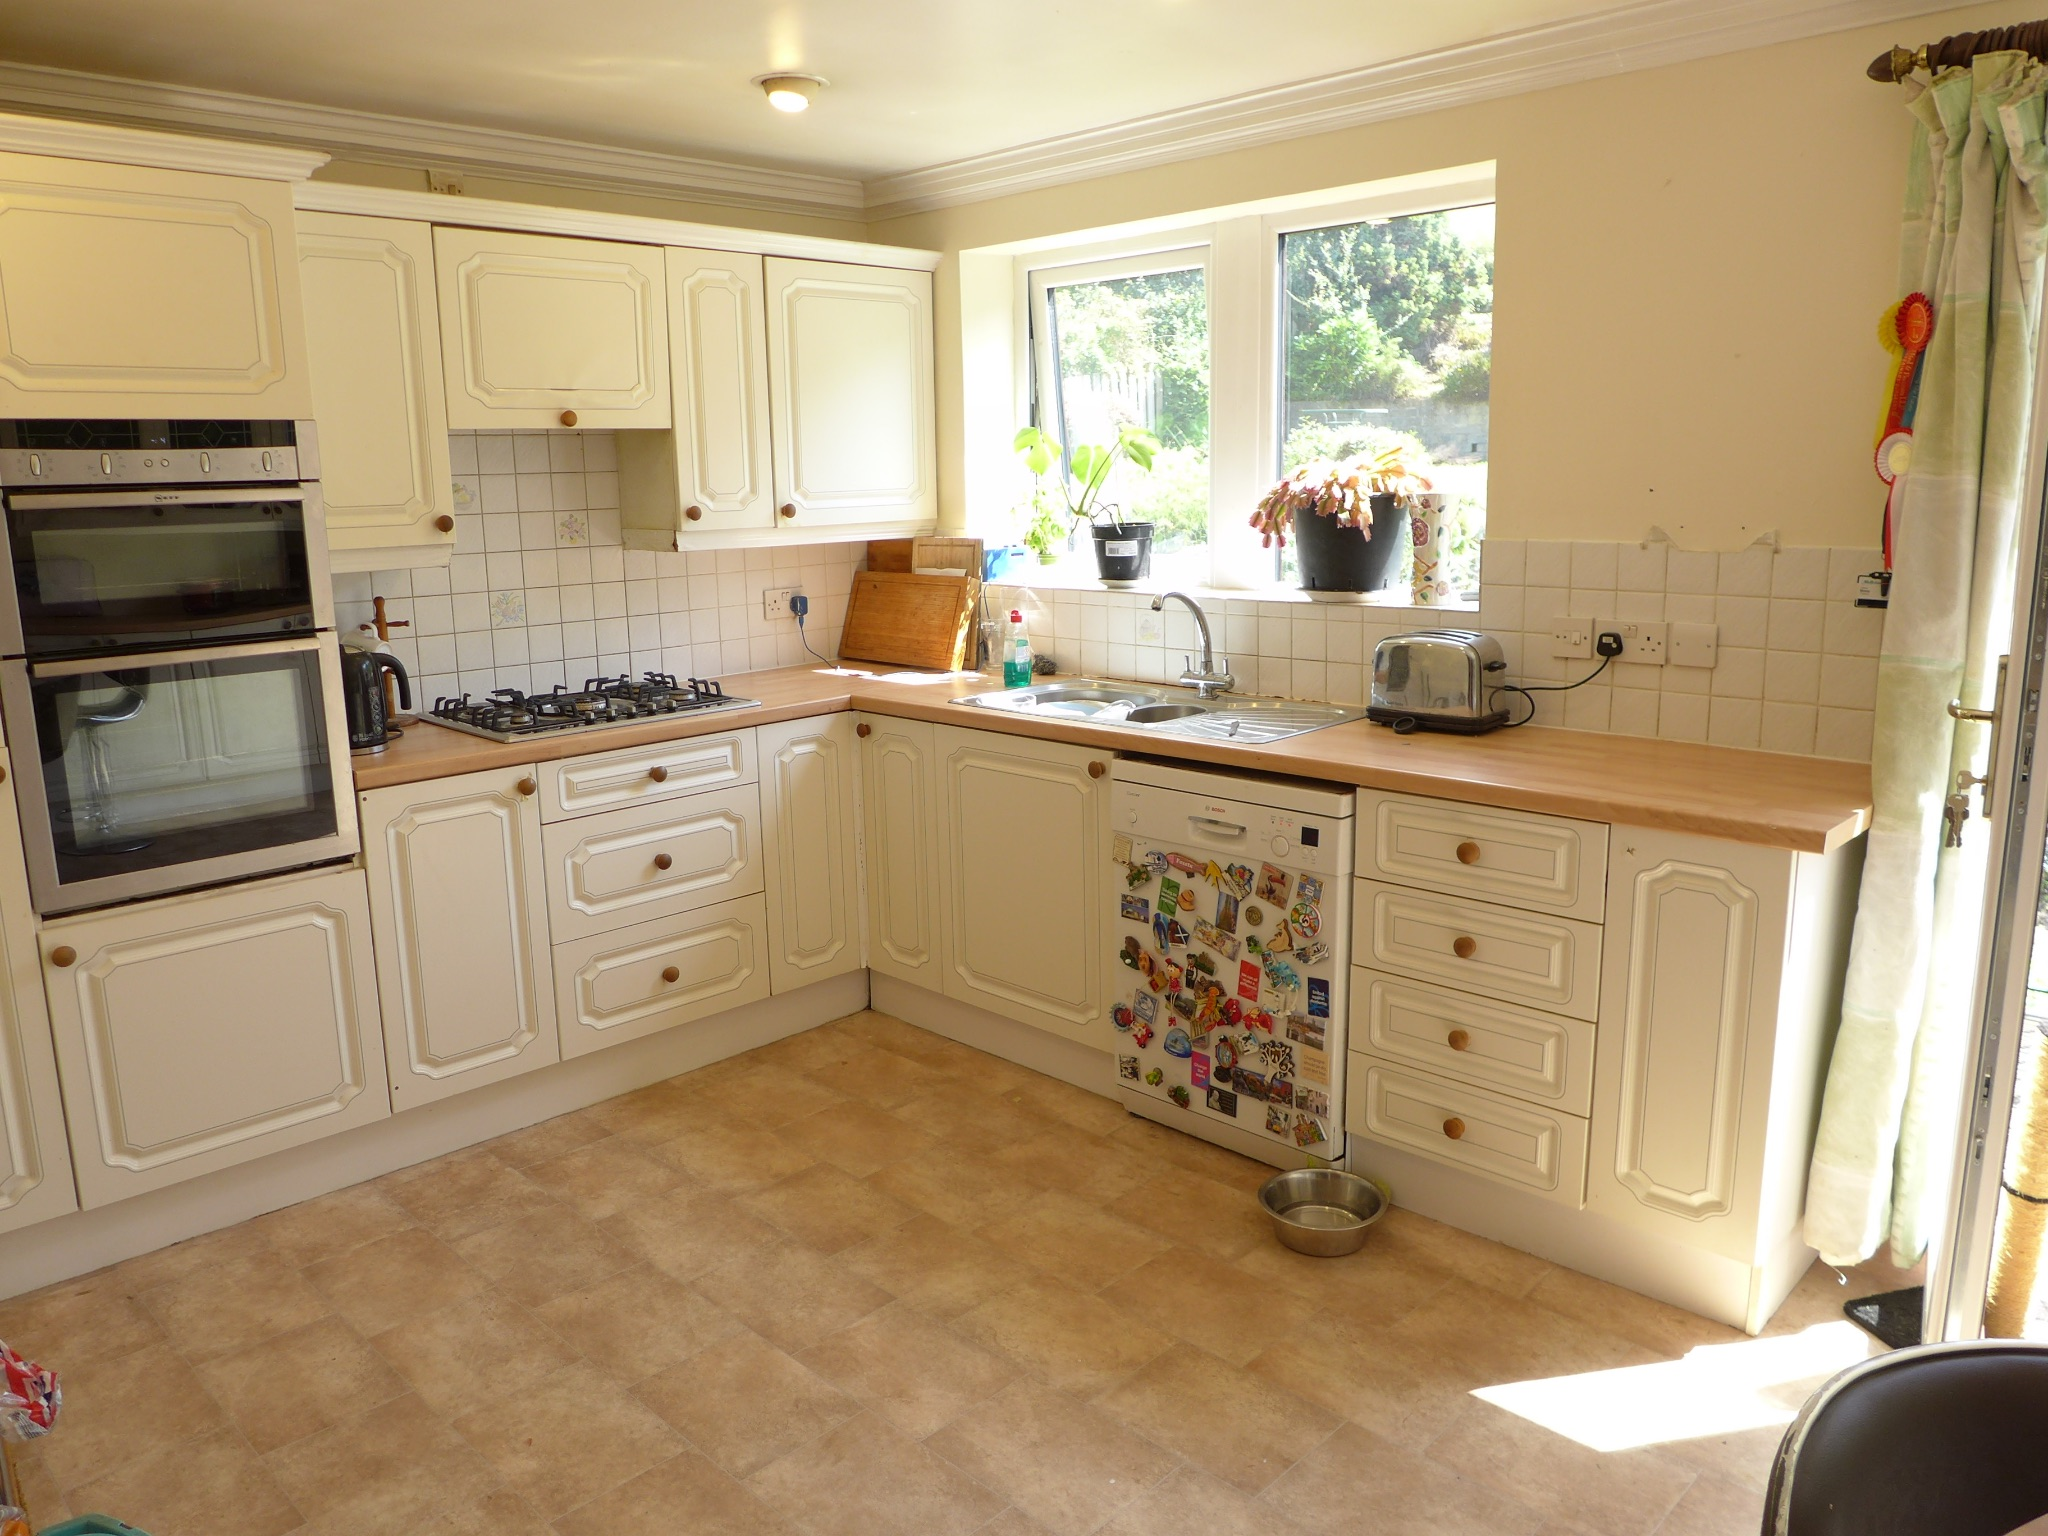 4 bedroom detached house For Sale in Todmorden - Photograph 6.